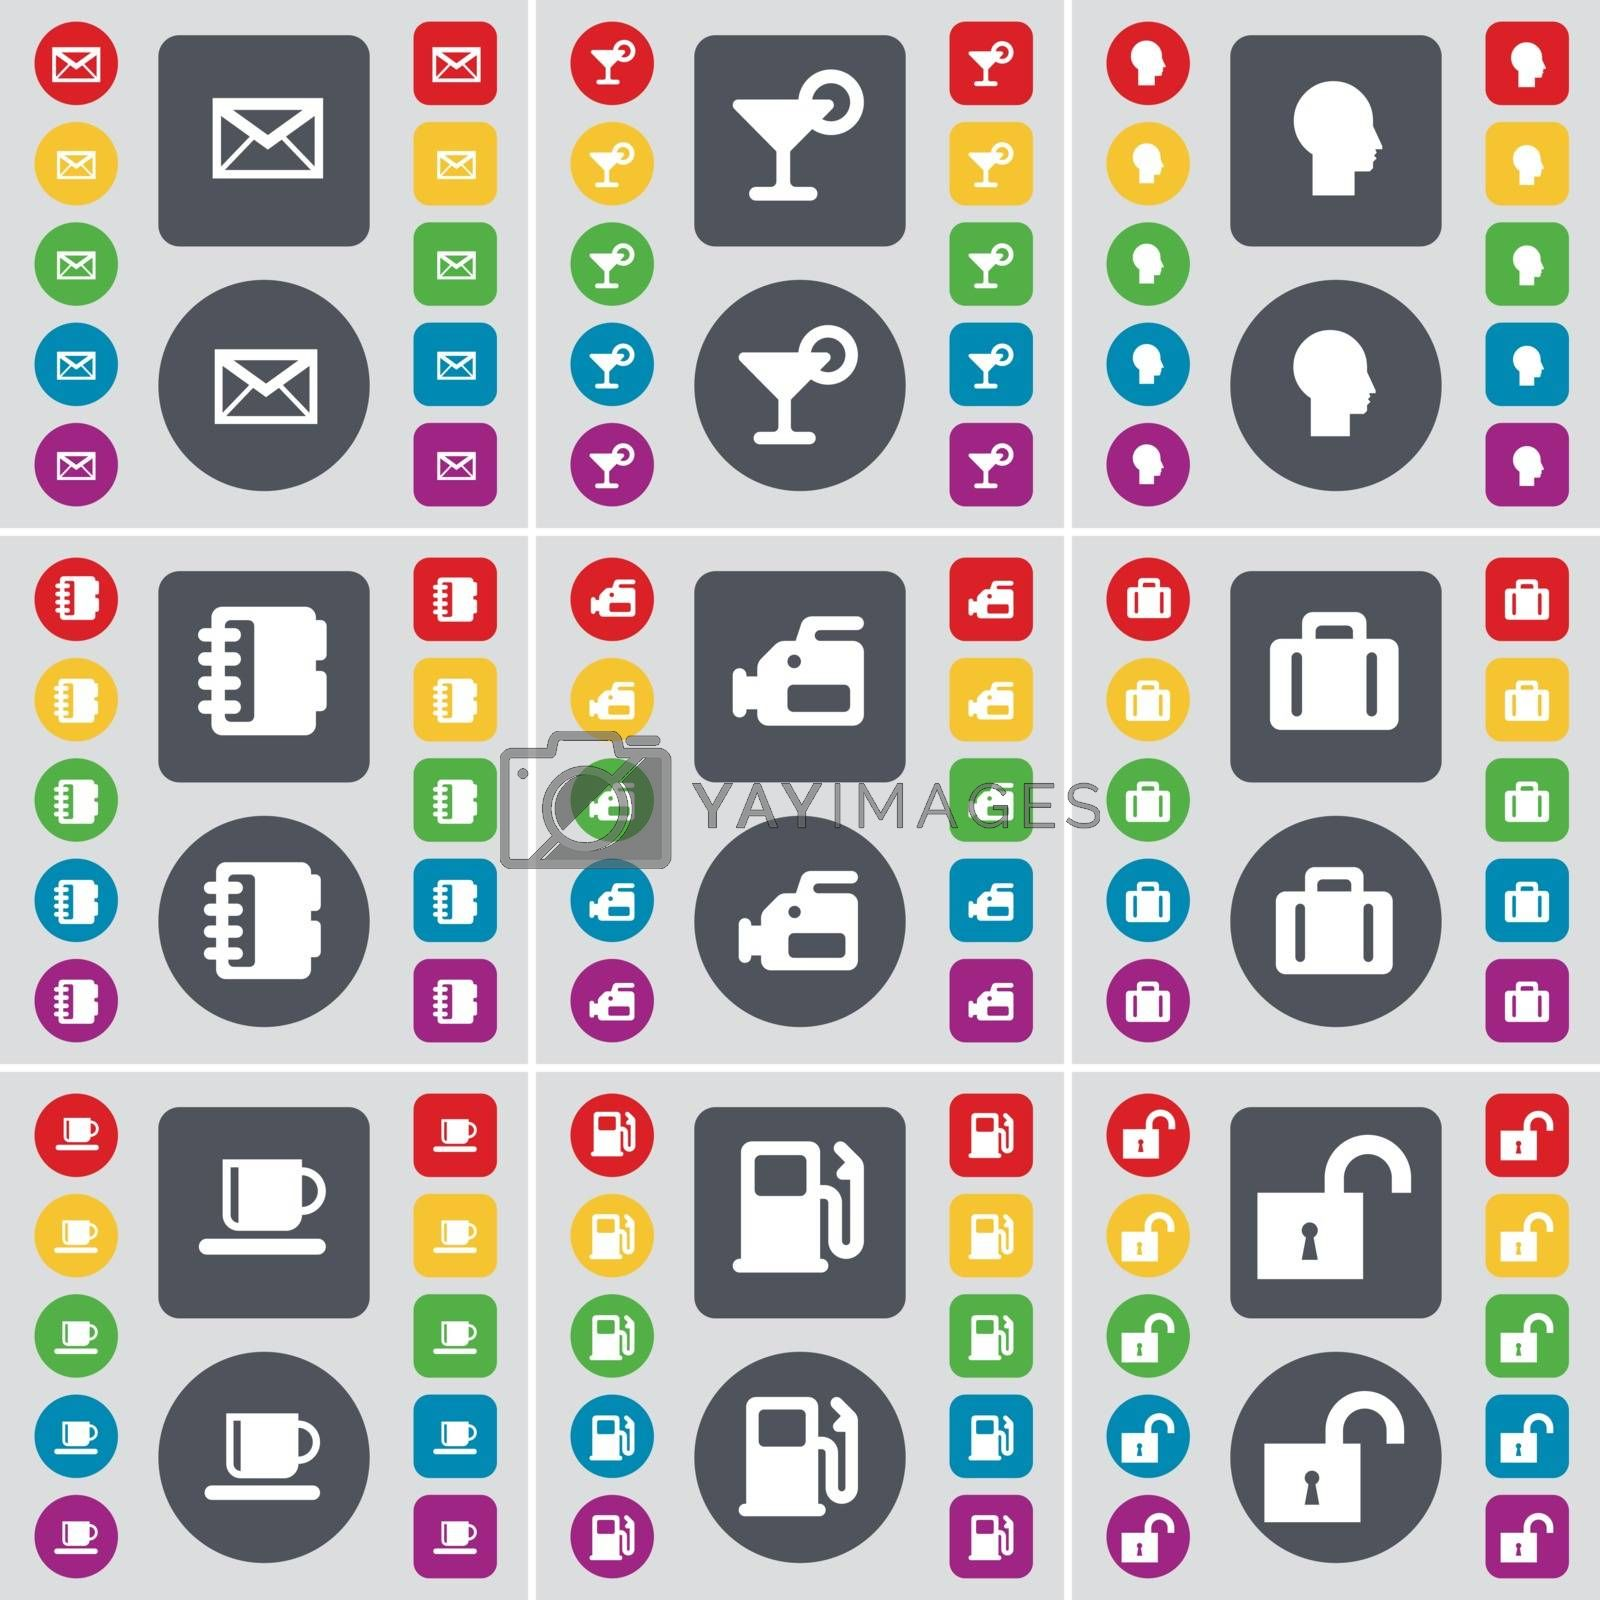 Royalty free image of Message, Cocktail, Silhouette, Notebook, Videocamera, Suitcase, Cup, Gas station, Lock icon symbol. A large set of flat, colored buttons for your design. Vector by serhii_lohvyniuk